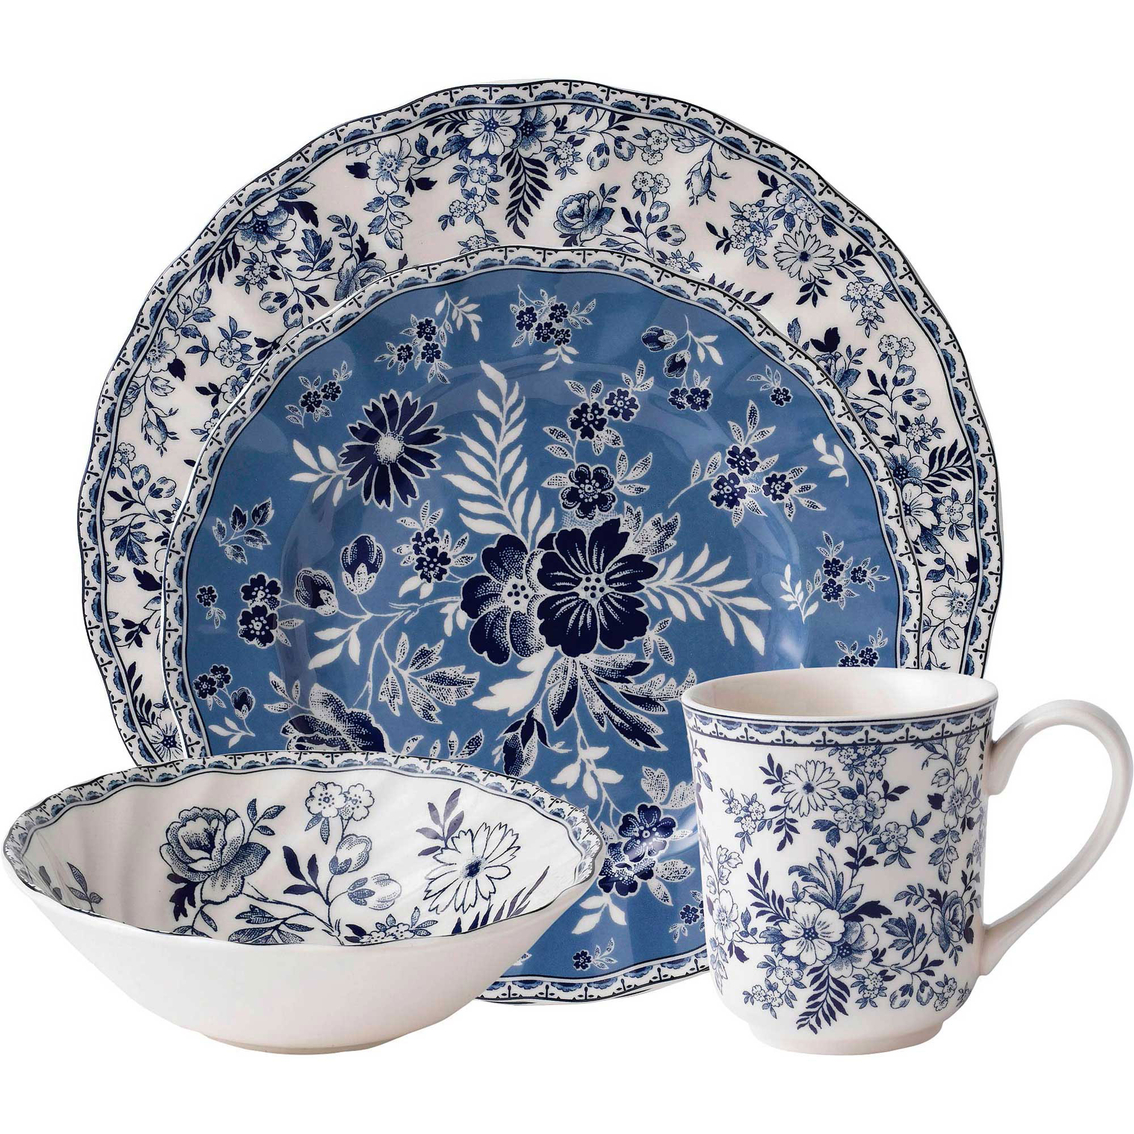 3015  sc 1 st  Exchange & Johnson Brothers Devon Cottage 4 Pc. Place Setting | Dinnerware Sets ...